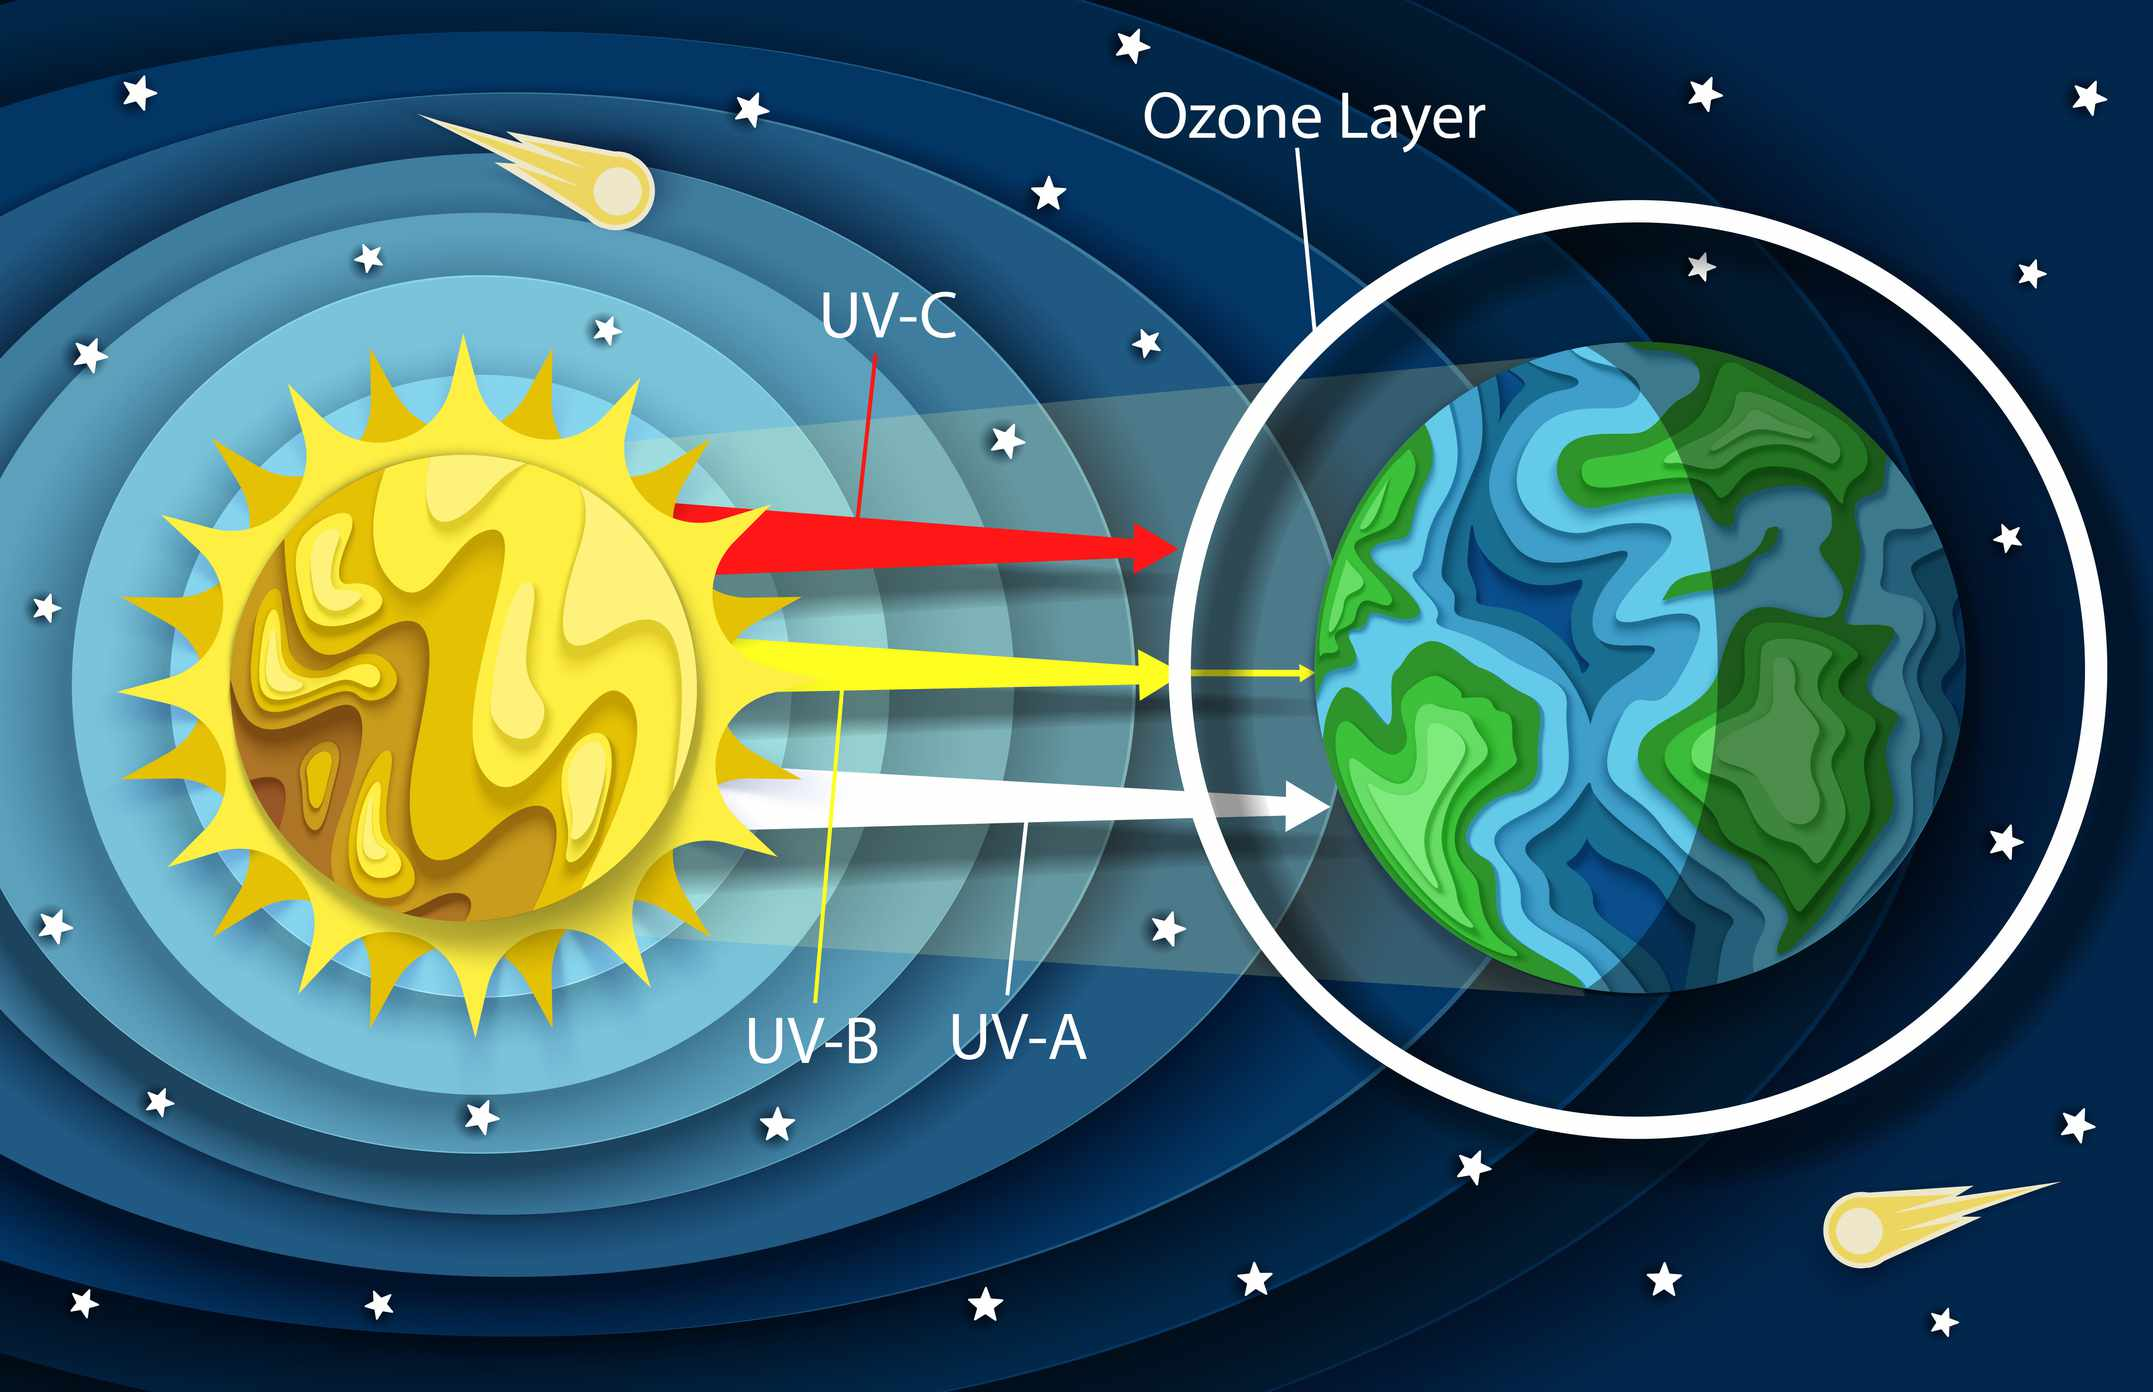 Illustration of the ozone layer and UV rays